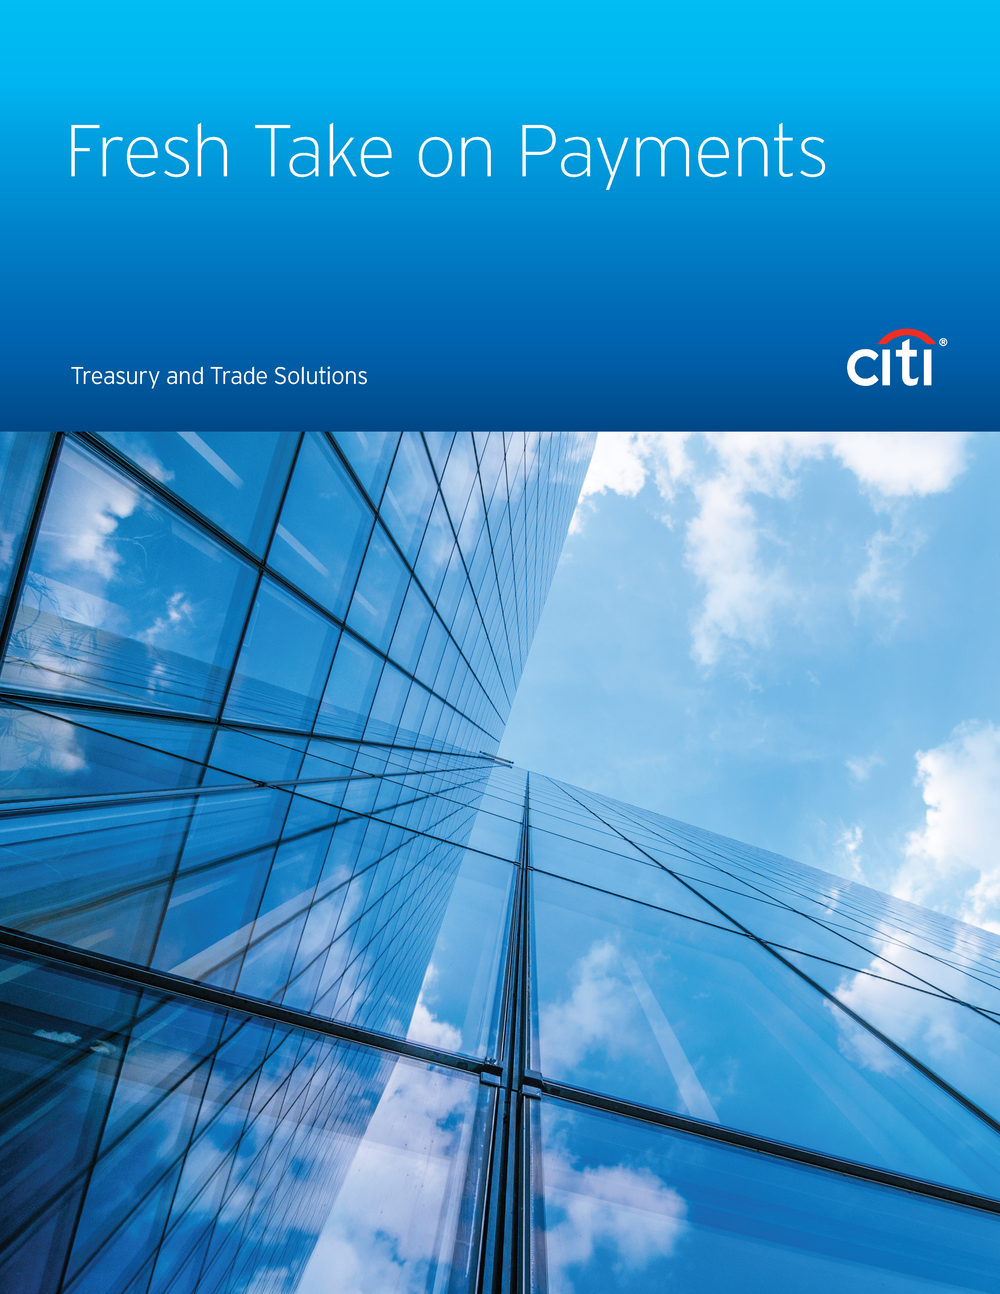 1126933_GTS26261_FreshTakePayments_Page_1.png